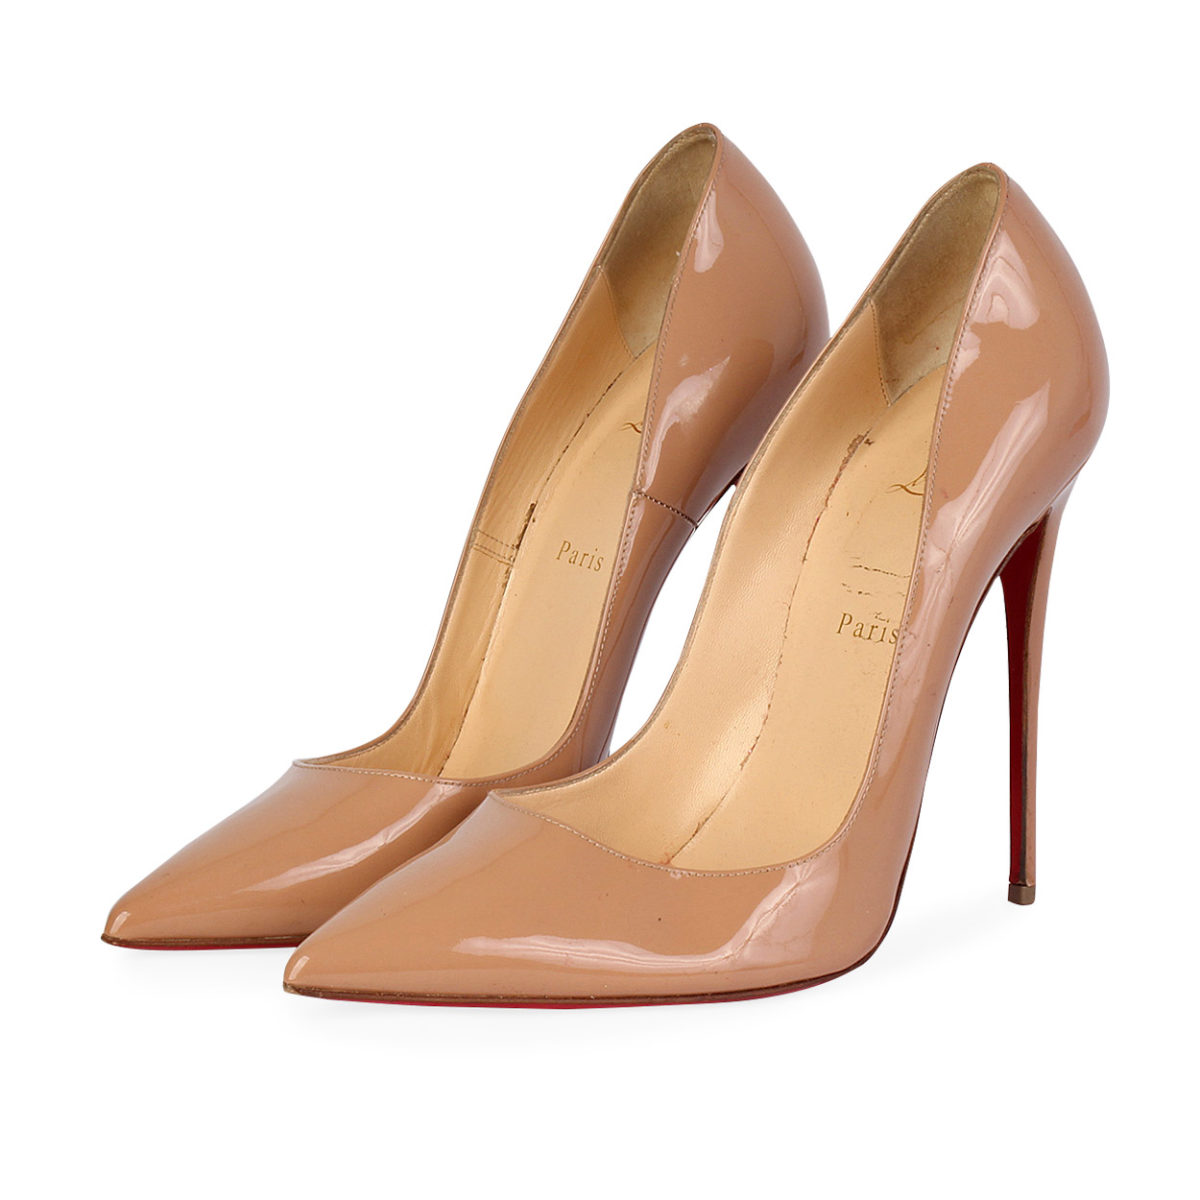 94037b5ac59 CHRISTIAN LOUBOUTIN Patent Leather So Kate Pumps Nude - S: 41 (7)